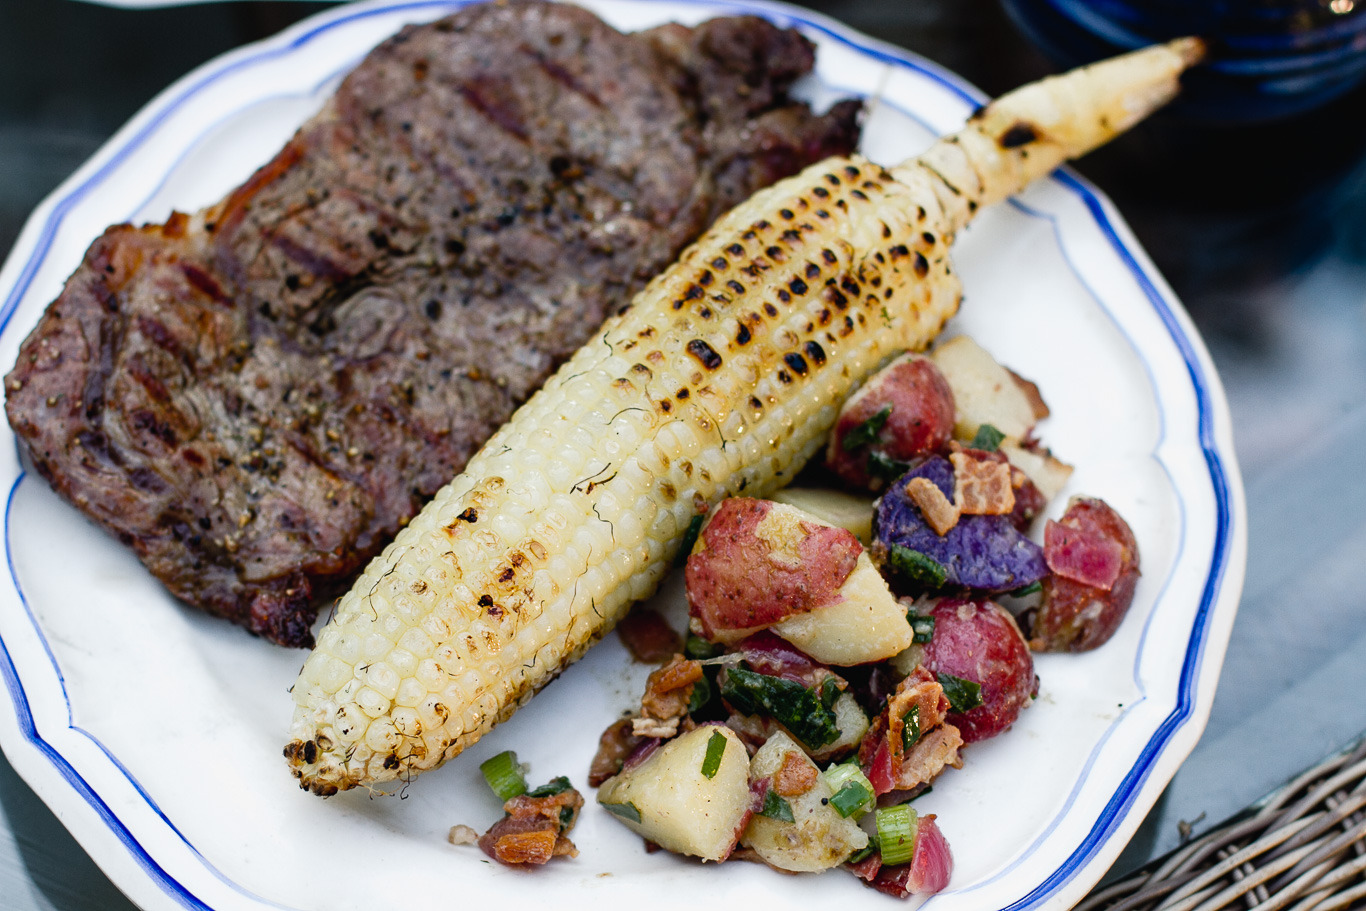 Grilled Steak with Chimichurri, Warm Potato Salad, and Cilantro Lime Corn on the Cob